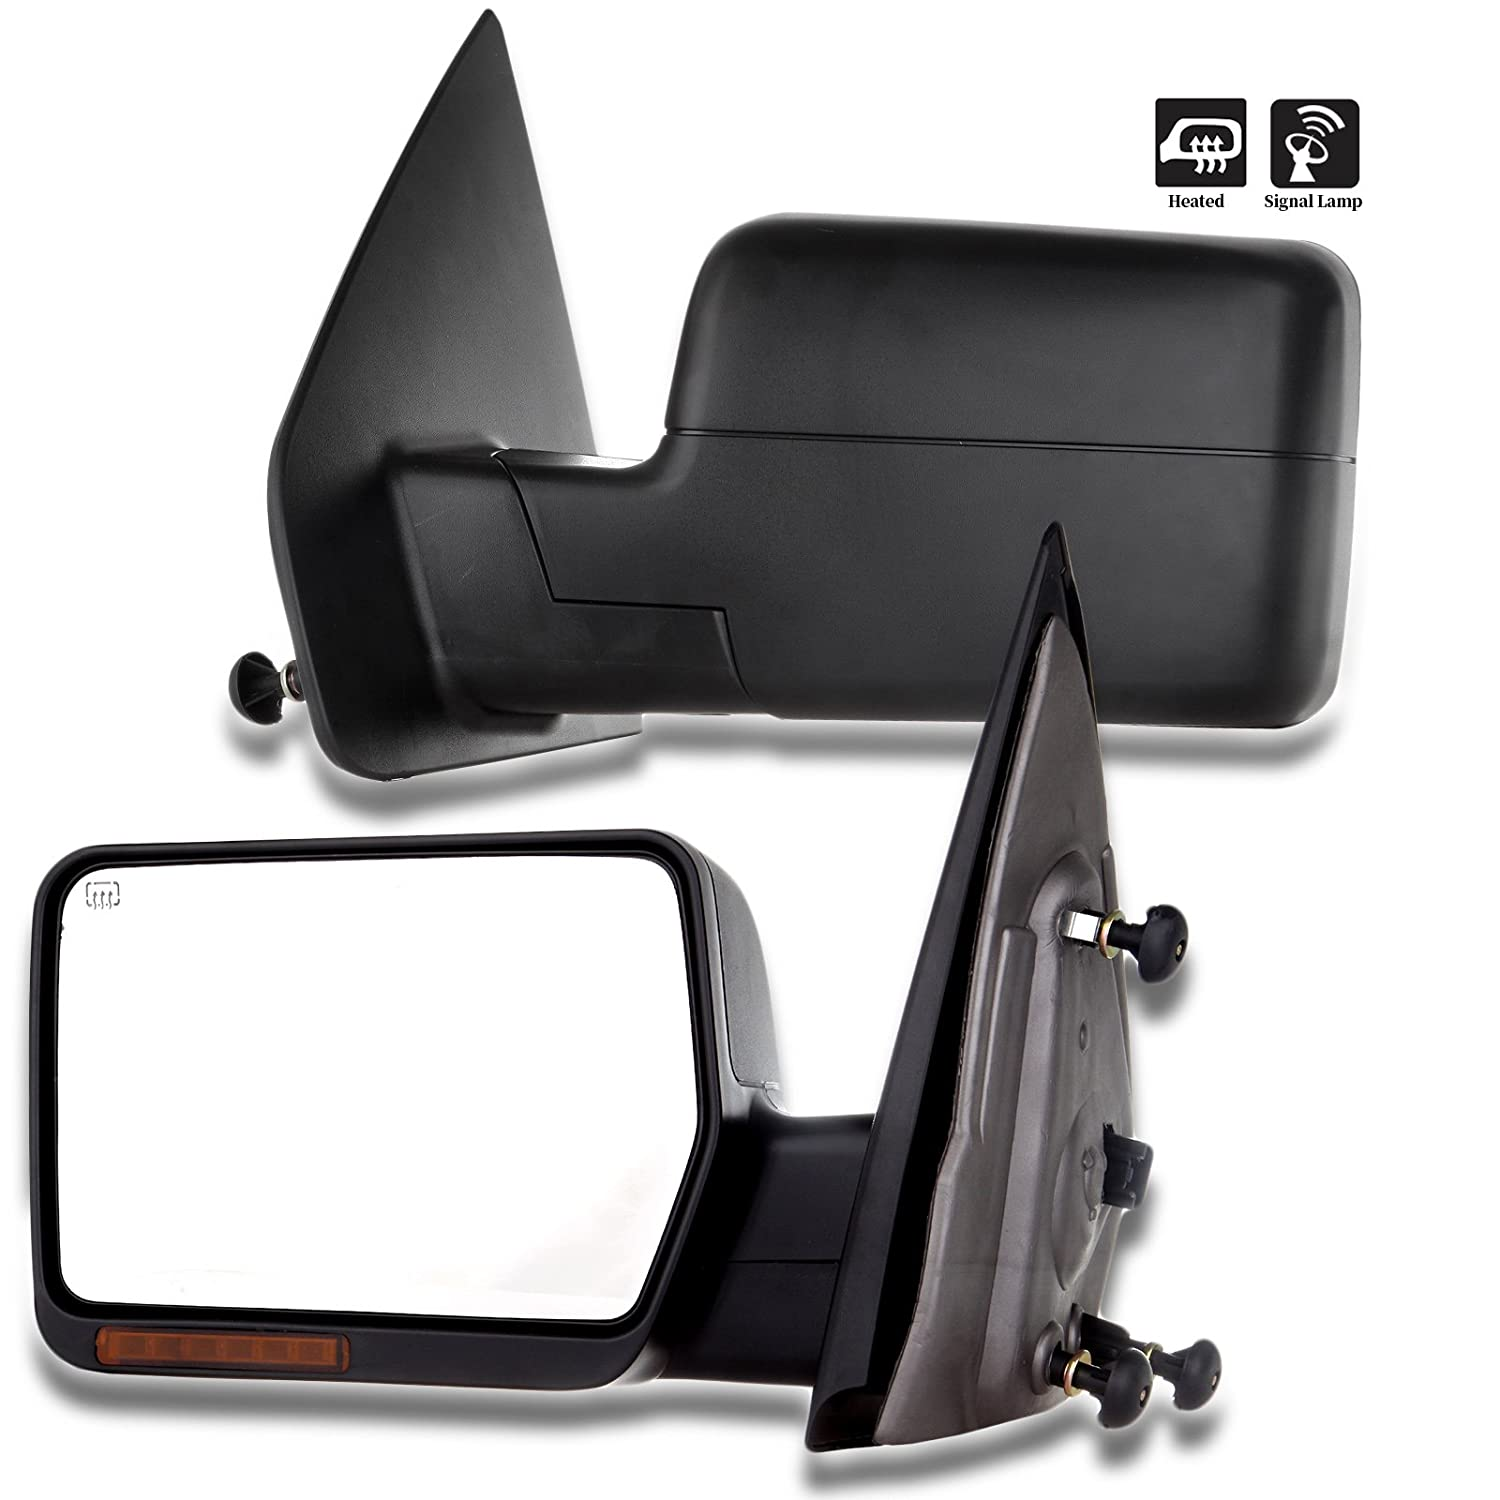 ROADFAR Towing Mirrors Fit Compatible with 2007-2014 Ford F-150 Series Truck Left Rear View Mirrors Power Adjusted Heated Turn Signal Light